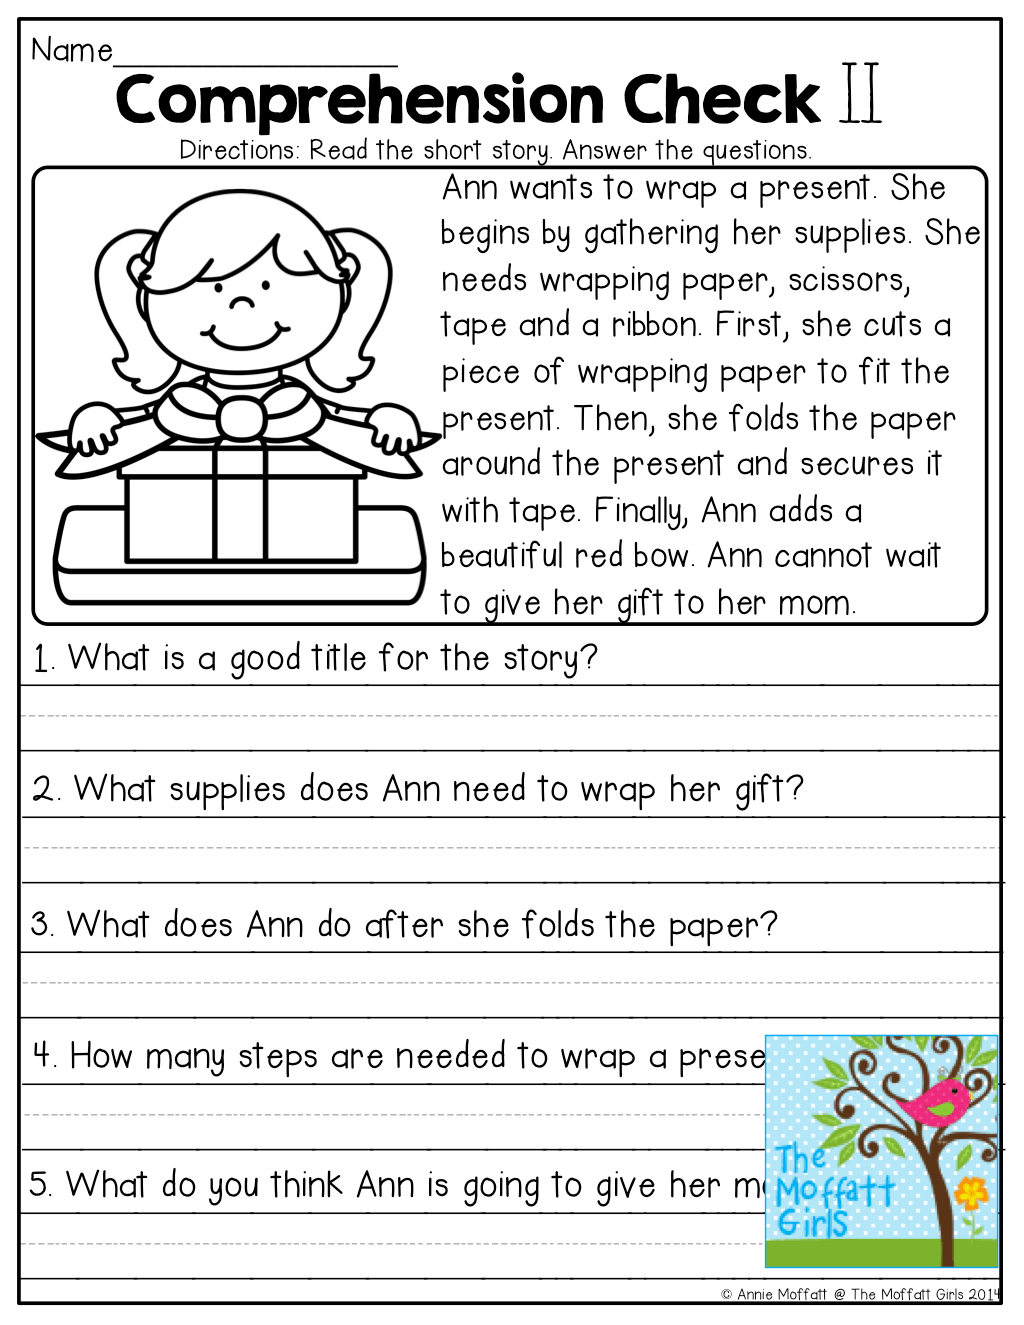 Worksheet Short Story For Comprehension Yaqutlab Free